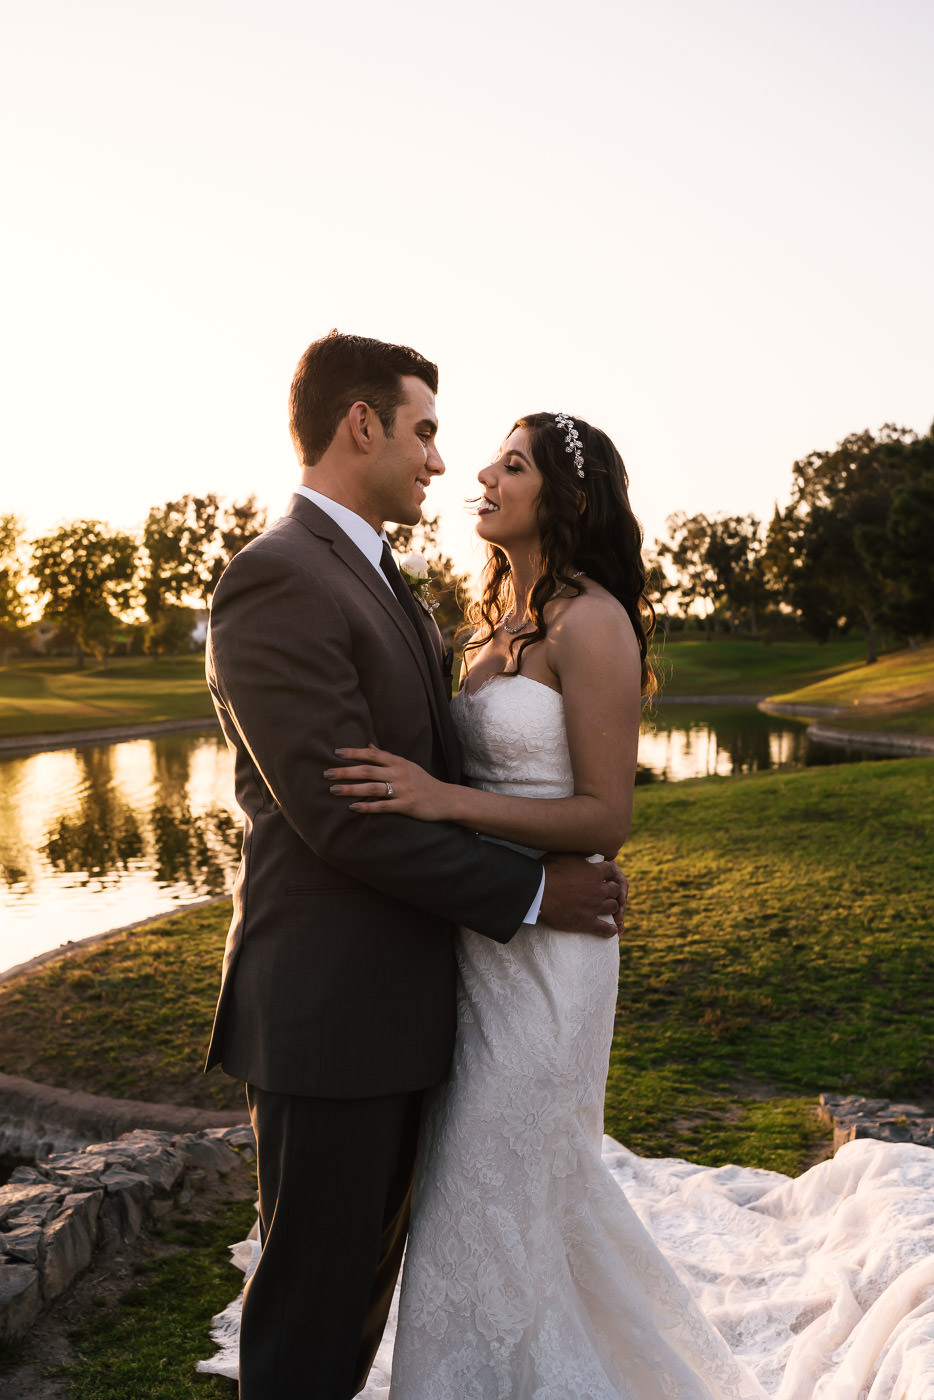 Beautiful couple gets close at sunset for a romantic photo session.